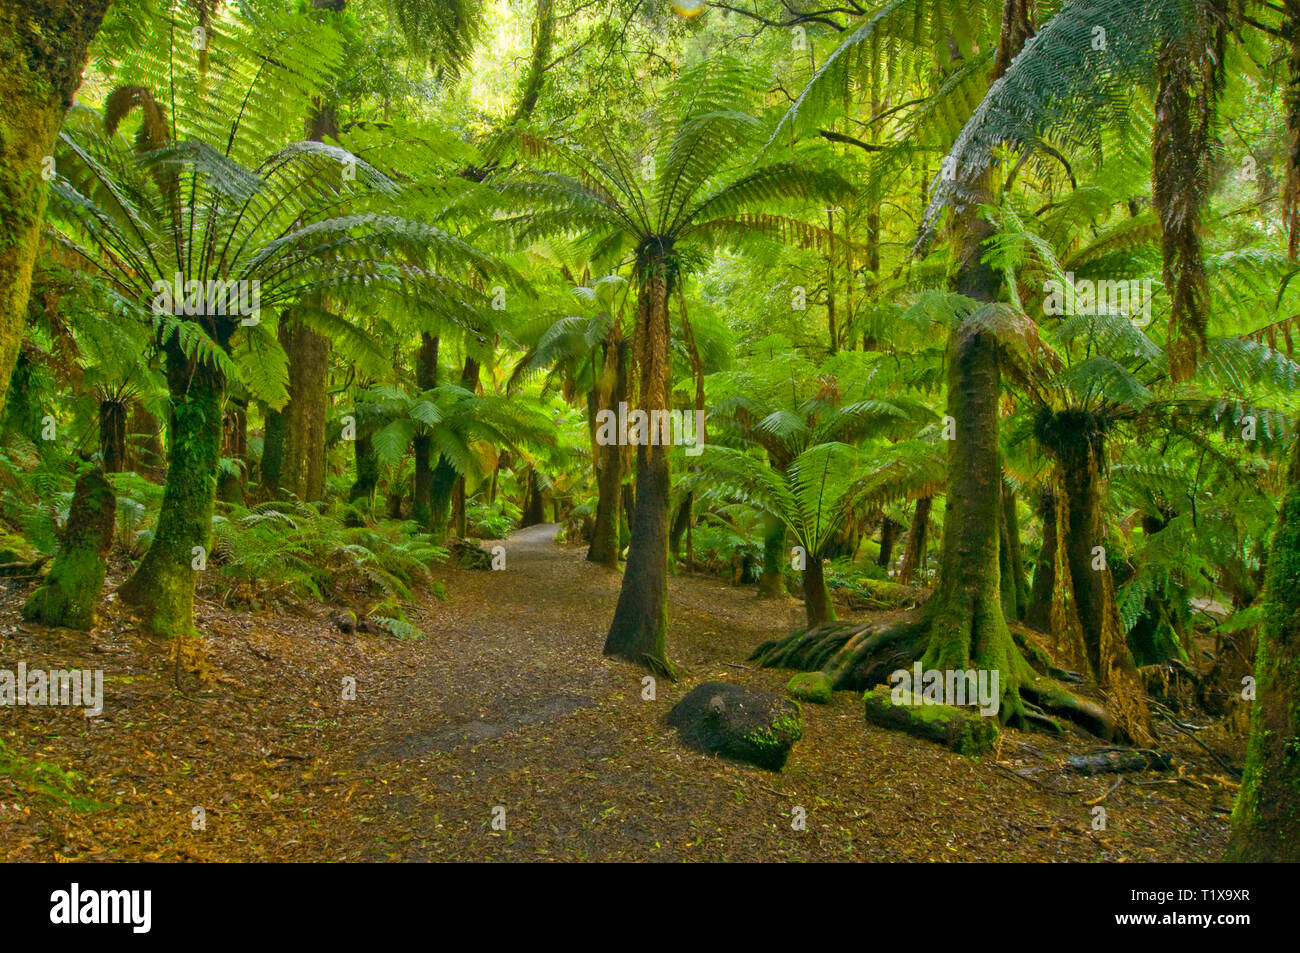 Soft green lighting issues from beneath the canopy of a palm forest. Tasmaina, Australia. - Stock Image